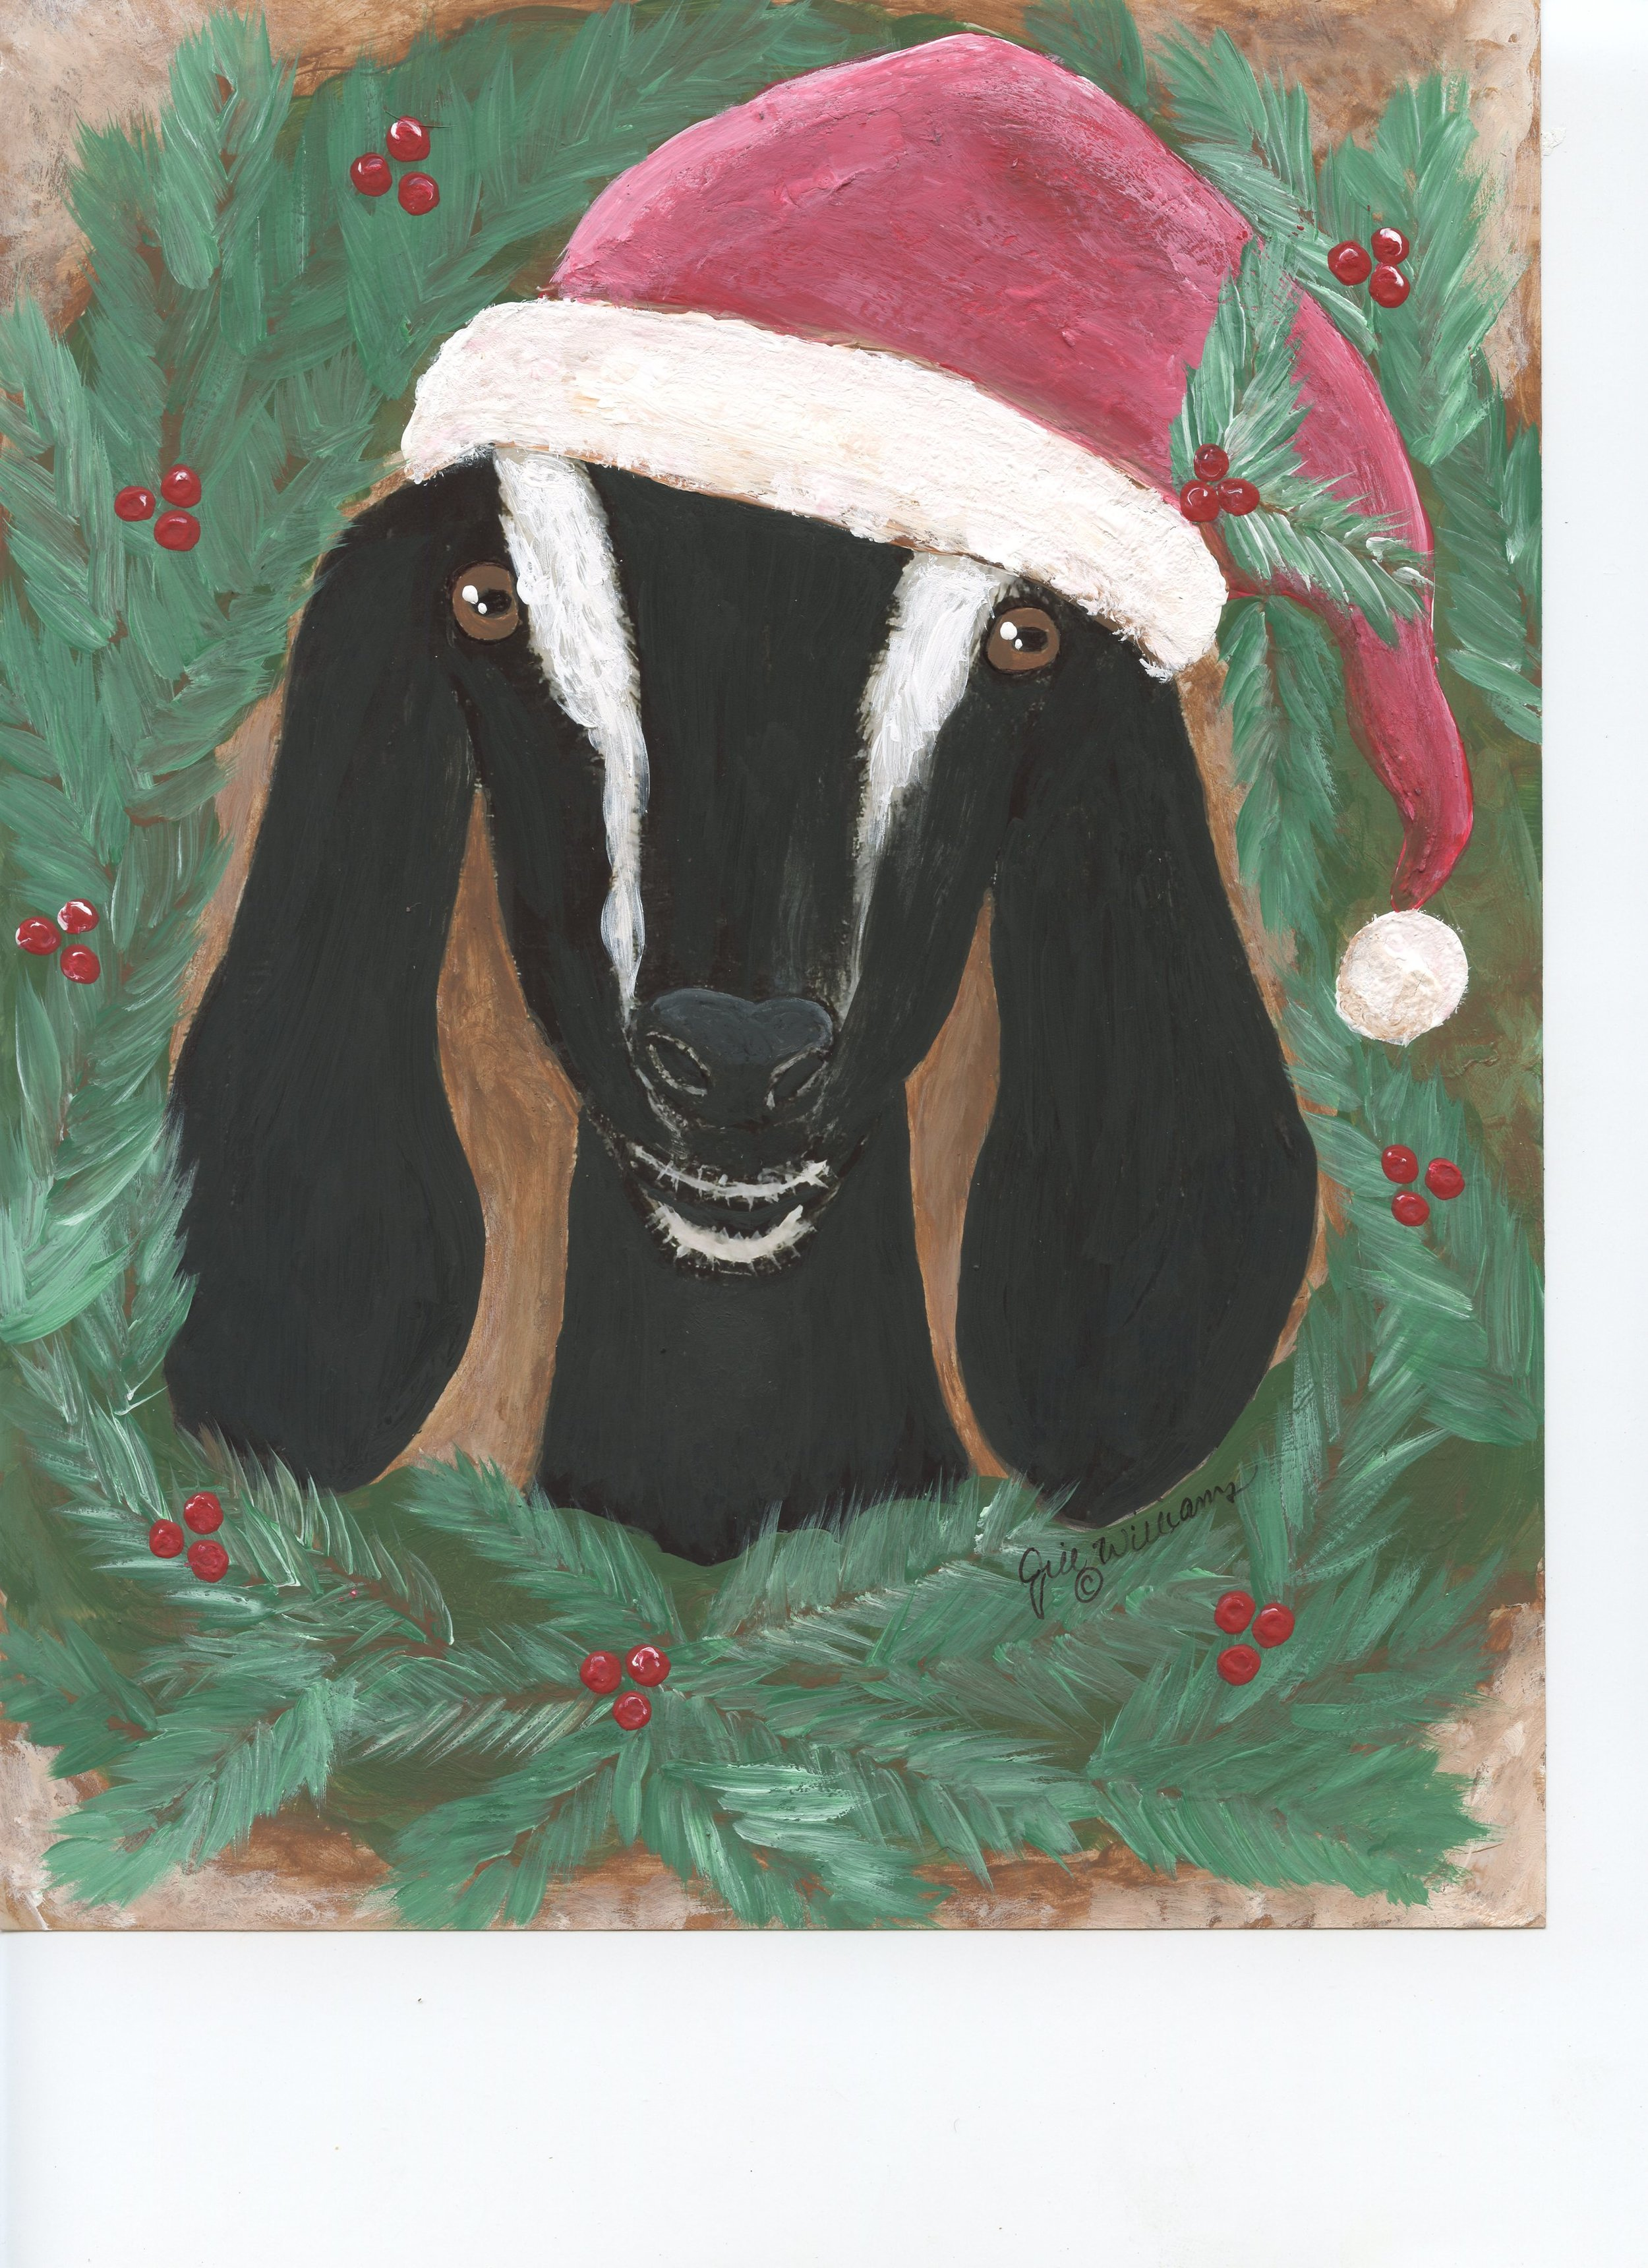 Christmas Blessings - Inspired by Regan, a nubian doe who lives at Town Mountain Farm, Hayesville, NC